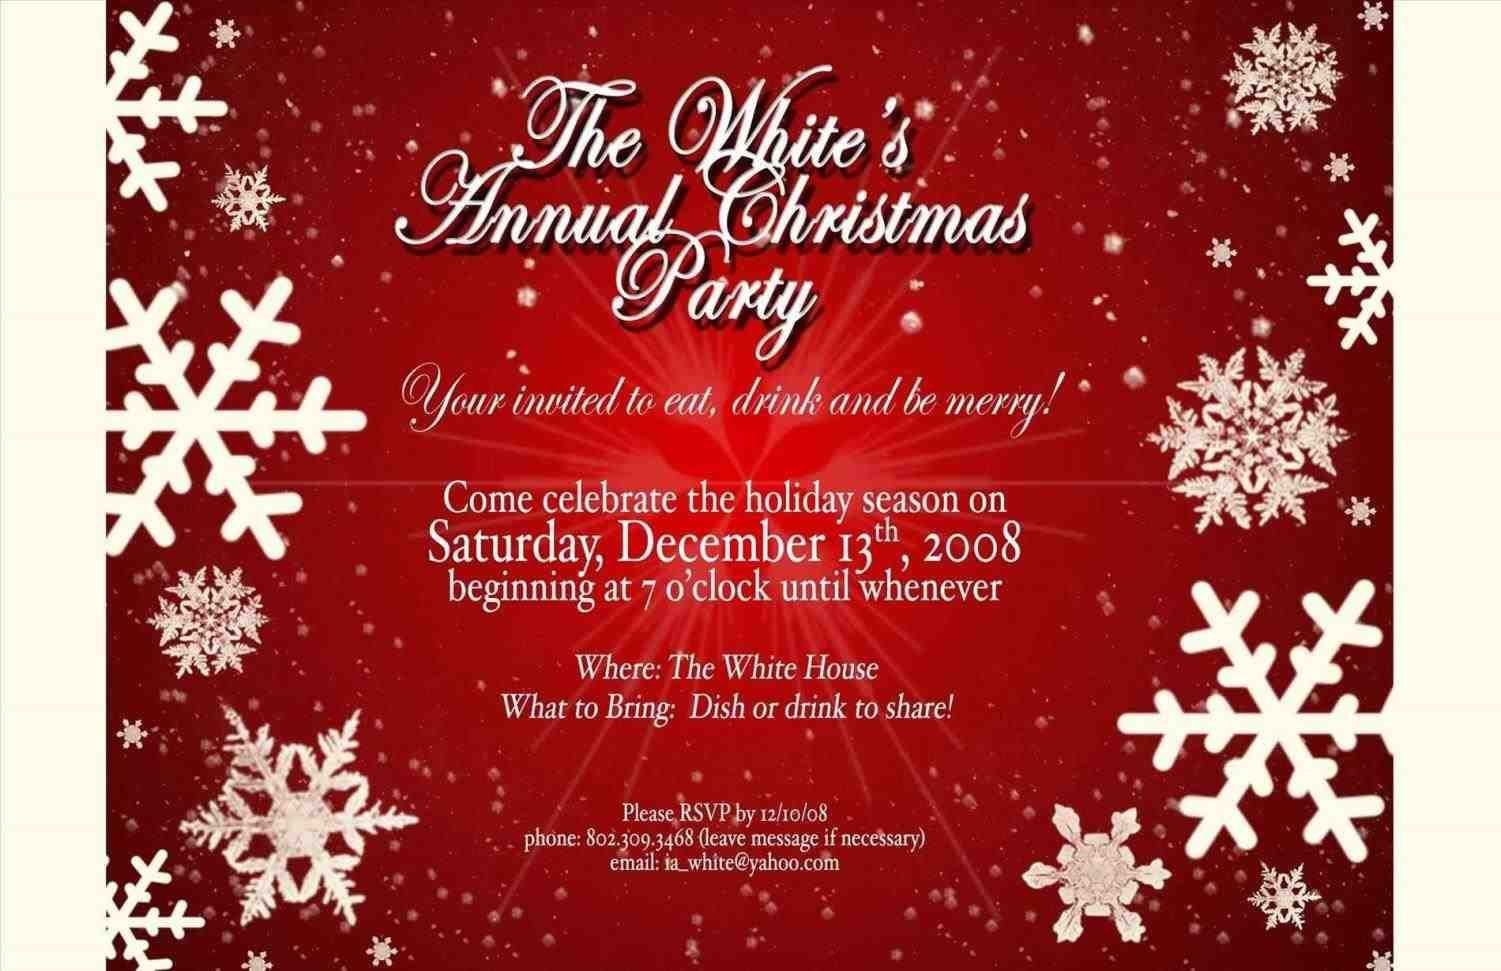 007 Wonderful Free Email Holiday Party Invitation Template High Resolution  Templates ChristmaFull